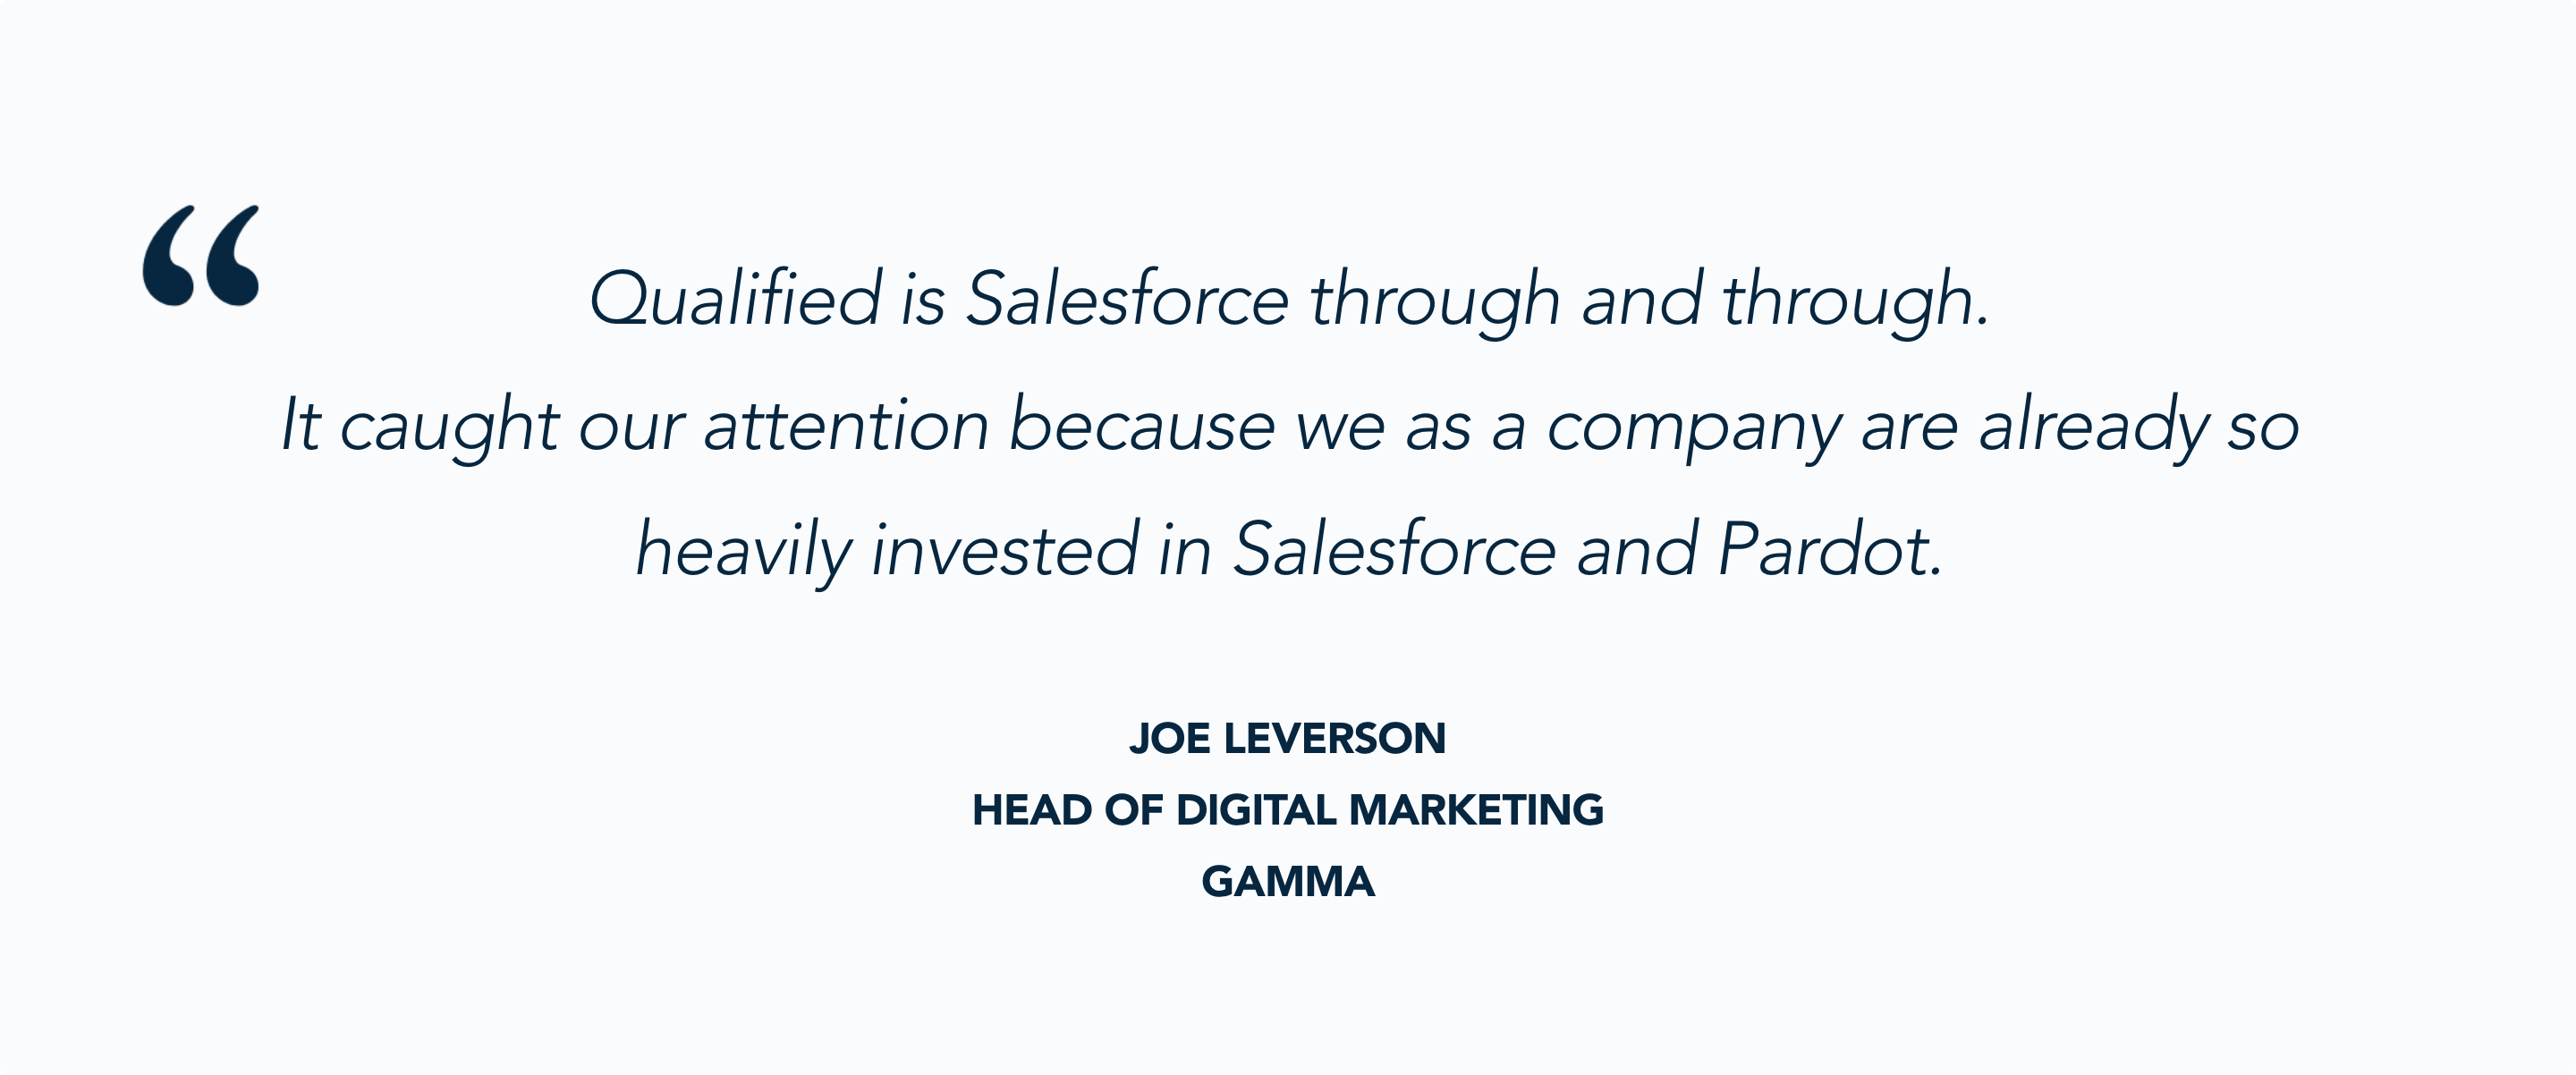 Qualified + Salesforce + Pardot = a stellar combination for Gamma